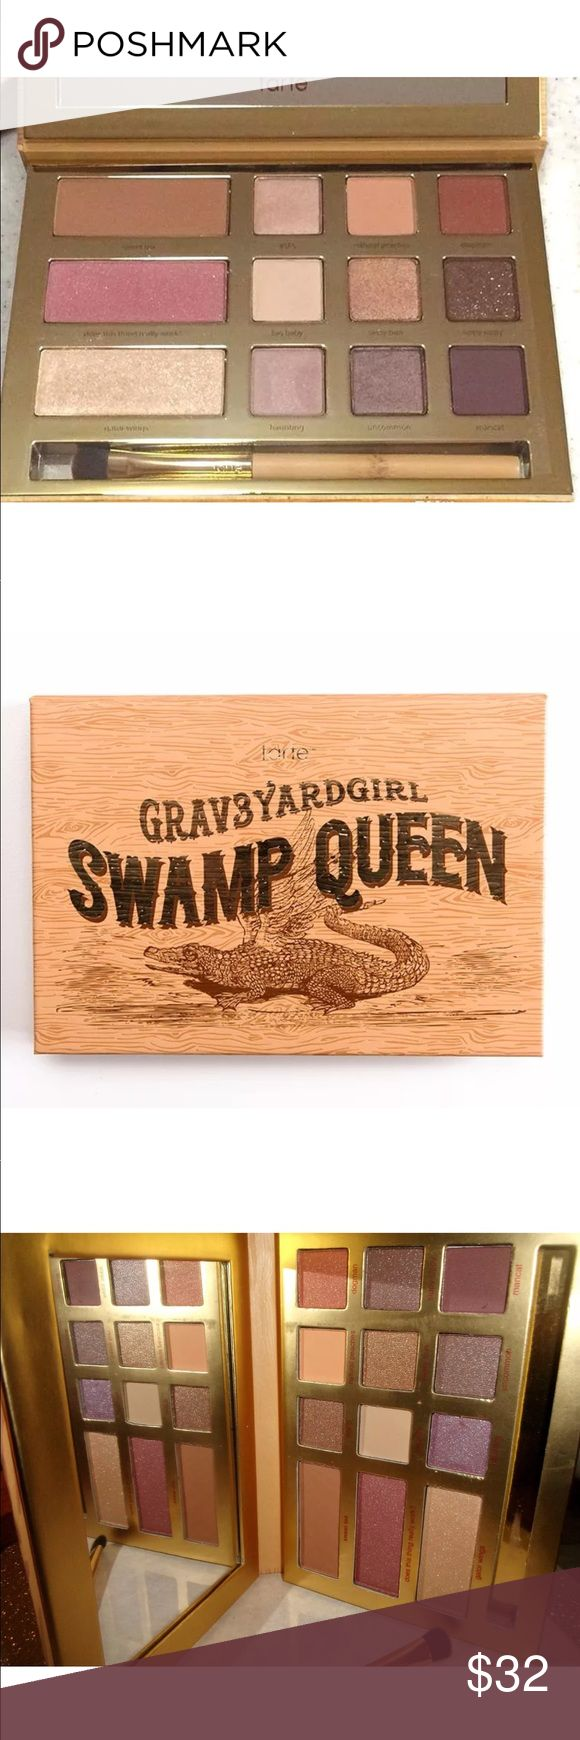 ❤️BNIB GRAVEYARD GIRL PALETTE❤️ Brand new! Tarte Swamp Queen Eye & Cheek Palette by Youtuber and Beauty Influencer Graveyard Girl ❤️ your funds help support cancer❤️ tarte Makeup Eyeshadow